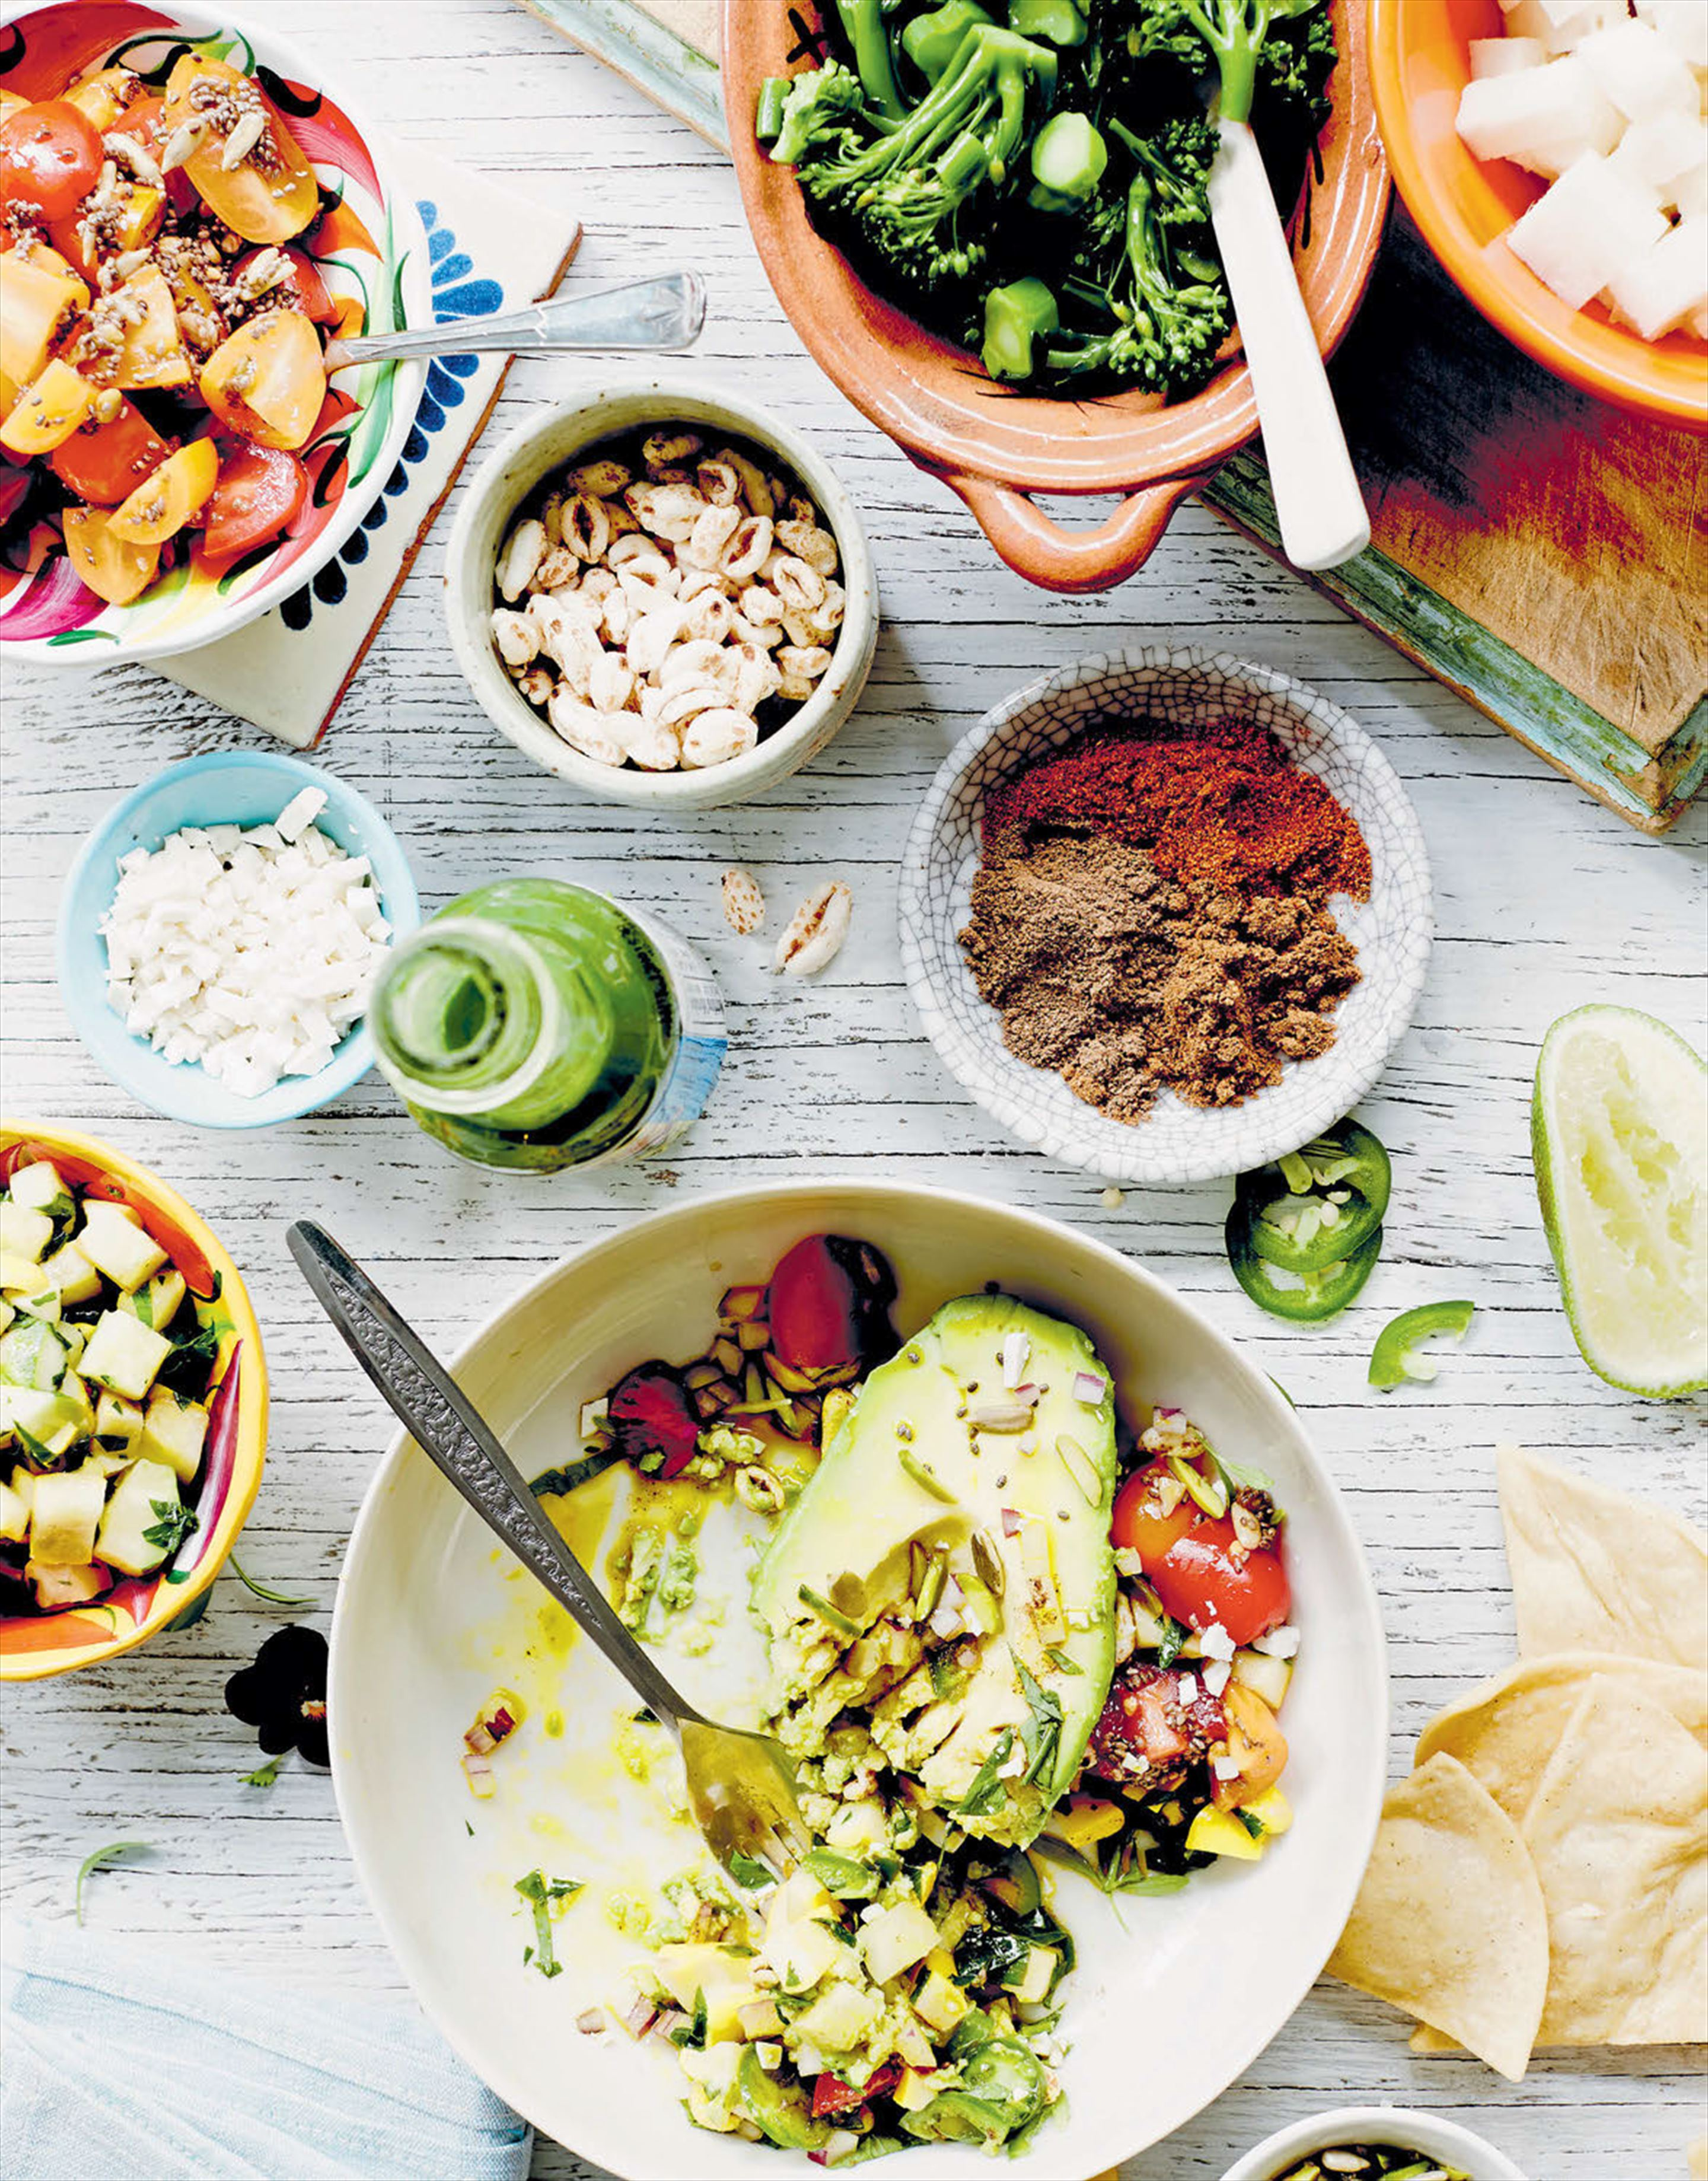 Table-side guacamole with super grains